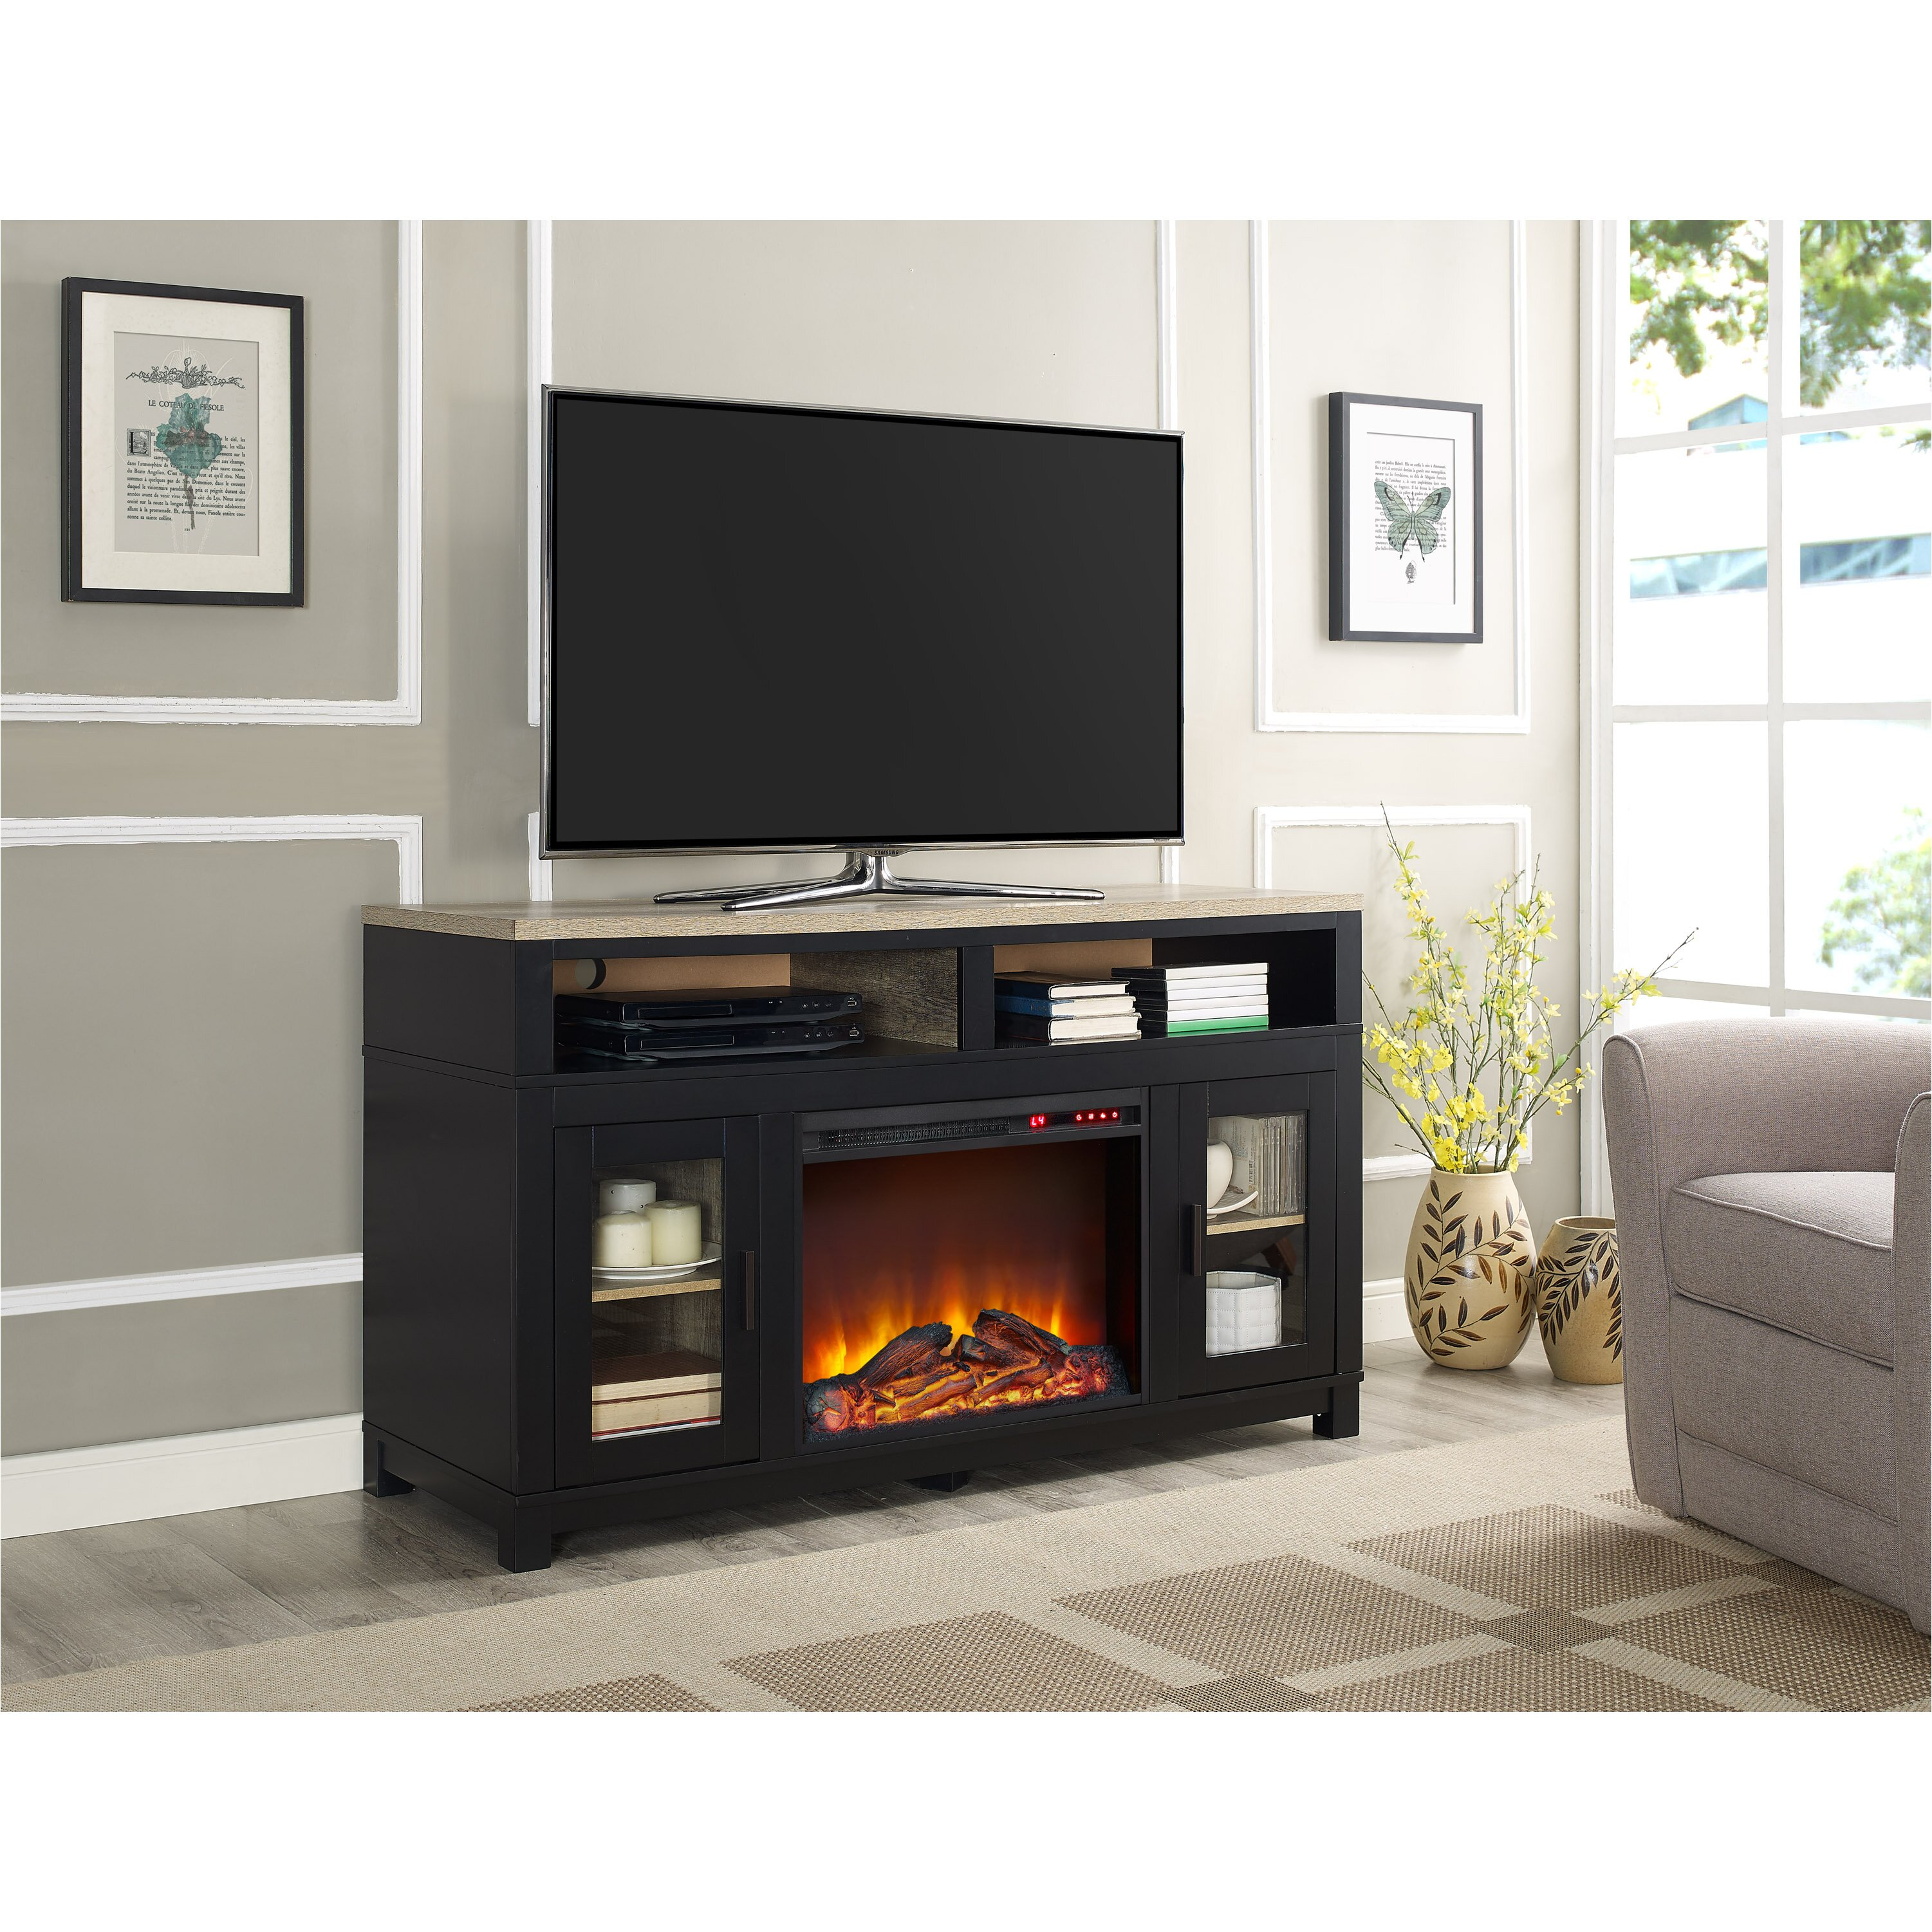 White tv stand with electric fireplace - Callowhill Tv Stand With Electric Fireplace